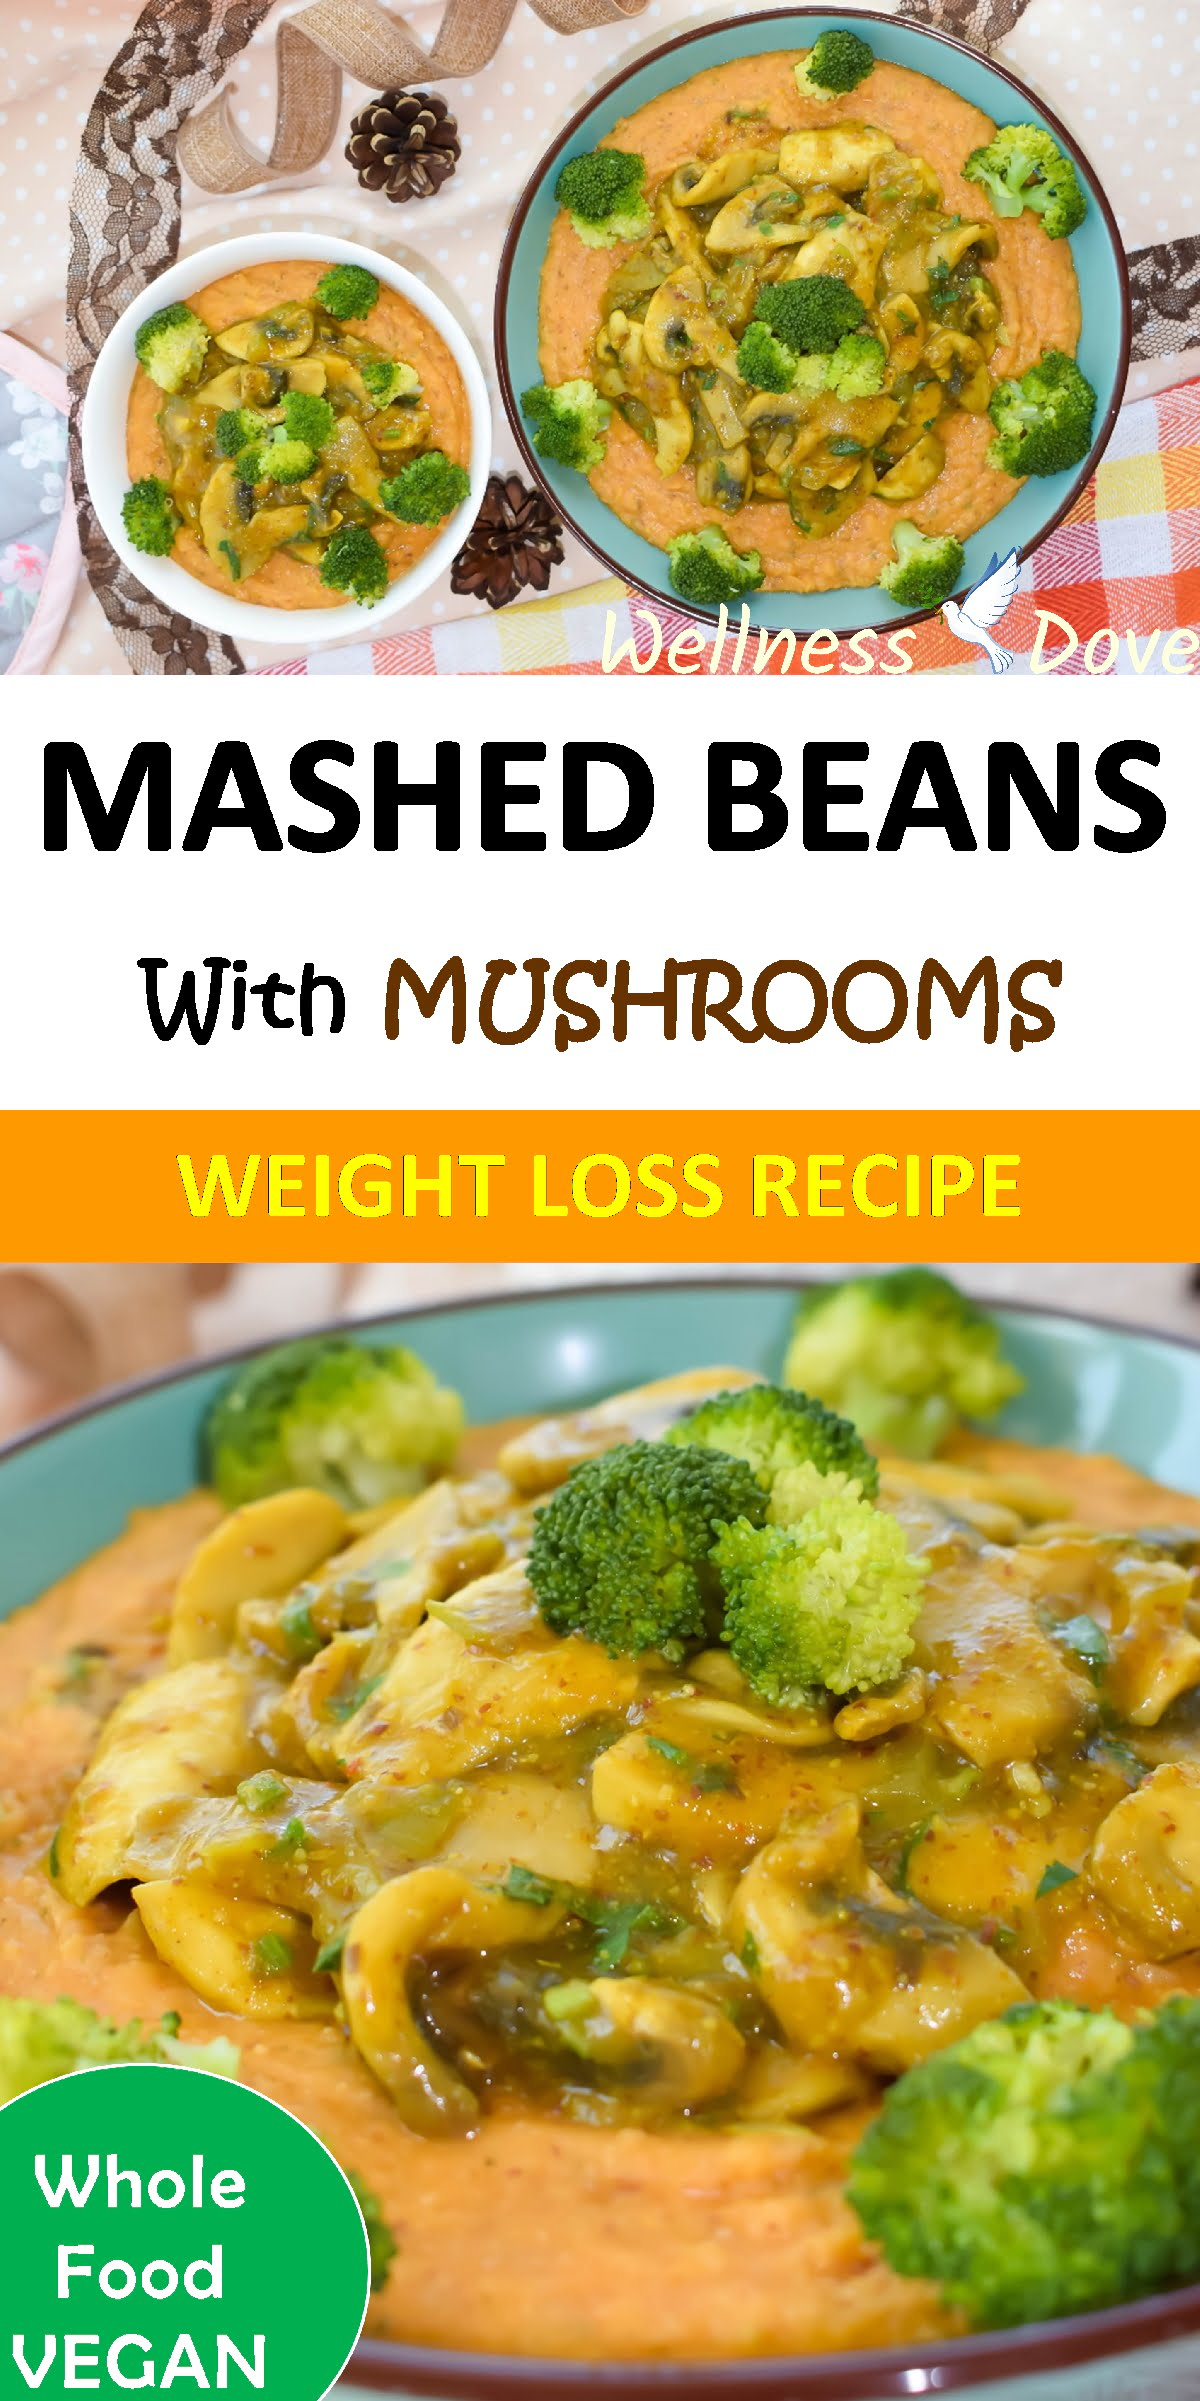 Oil-free recipe with only whole plant food ingredients.The curry powder and garlic add to the eastern note of the mushroom sauce.It combines perfectly with the taste of beans, giving you a rich and satisfying flavor.